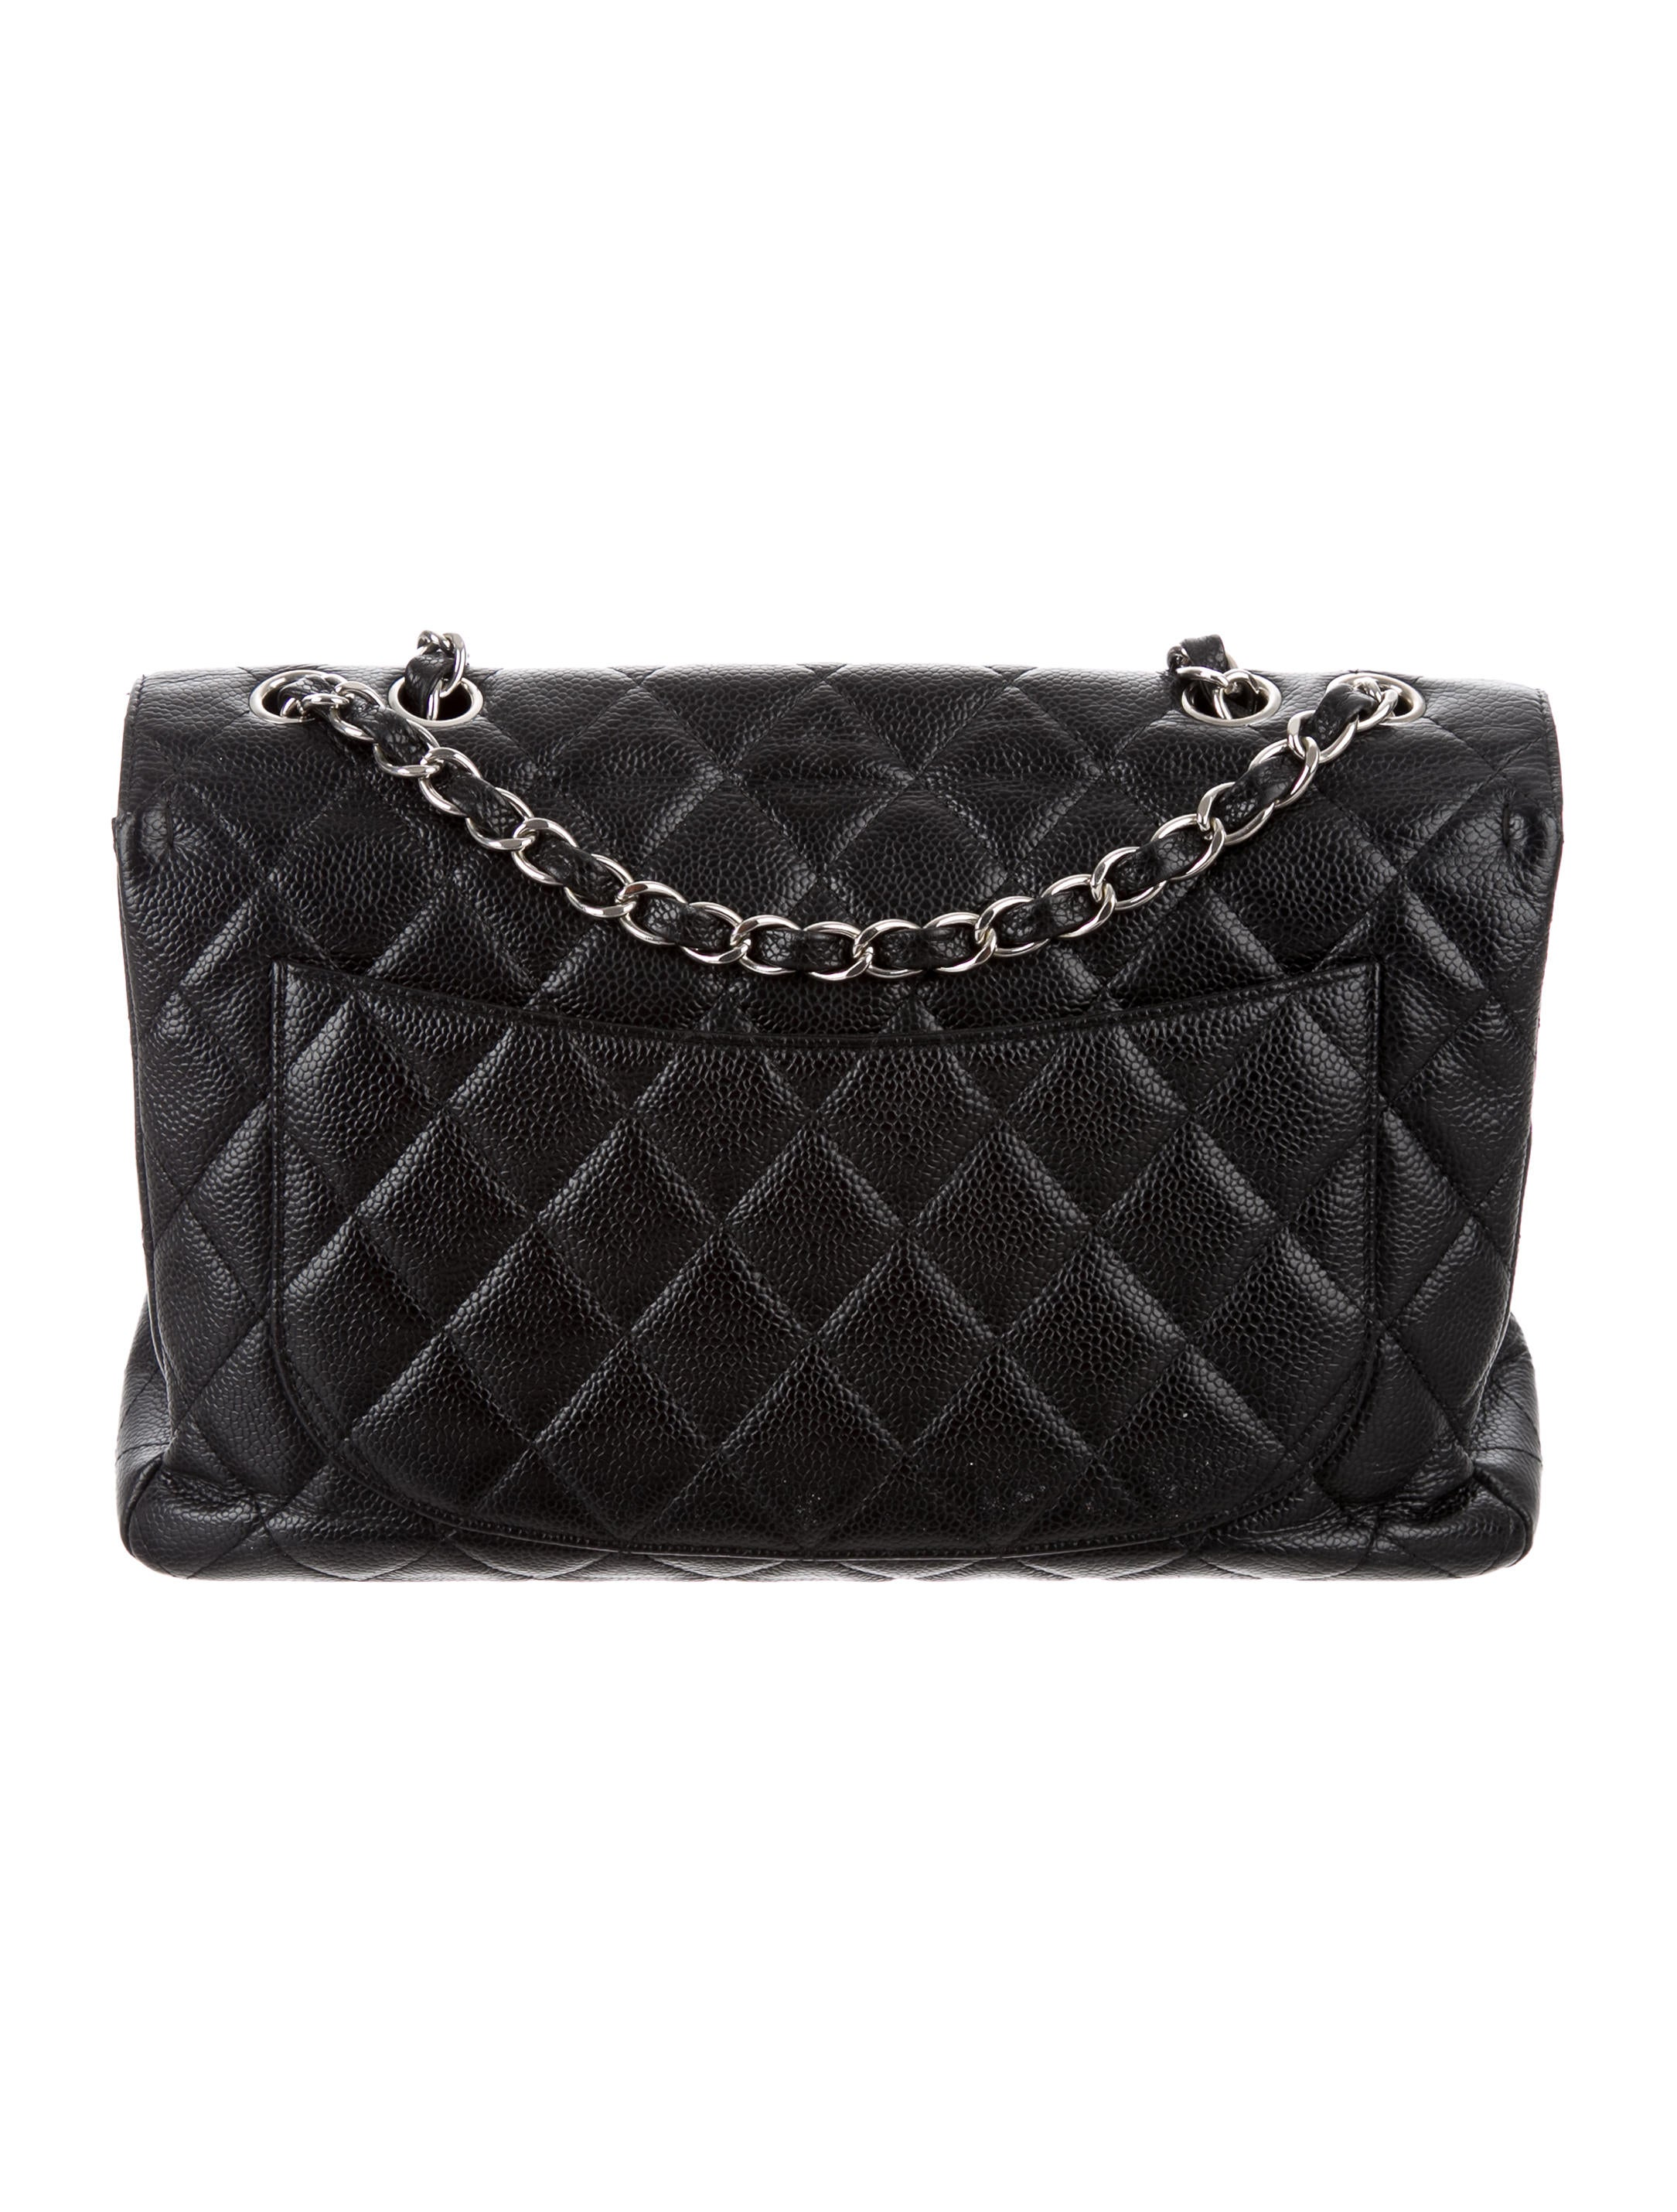 e8e155c8c48c Chanel Maxi Bags Not On Chanel Website   Stanford Center for ...